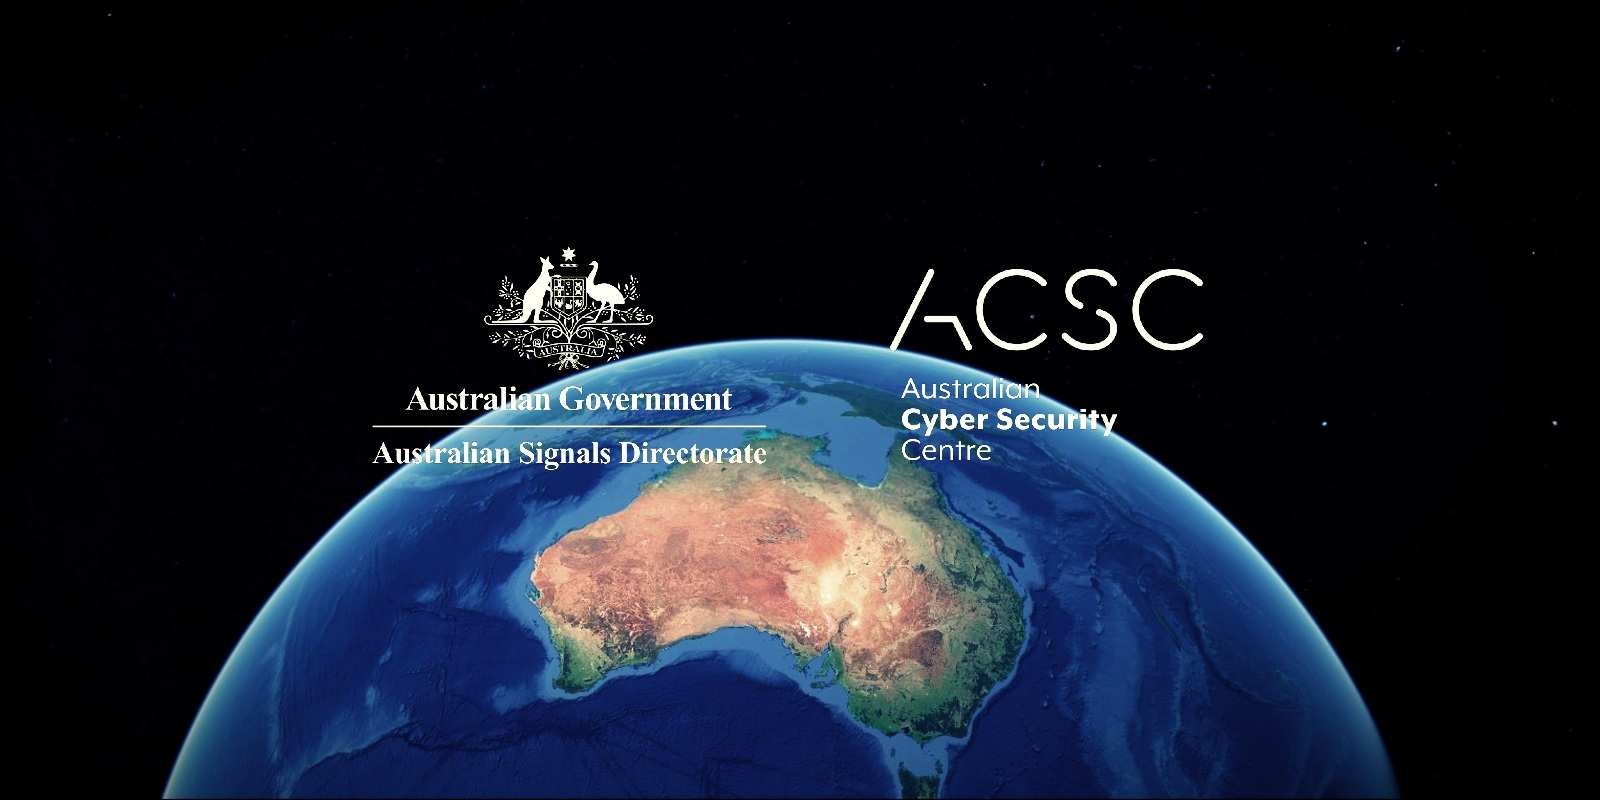 Australian cybersecurity agency used as cover in malware campaign